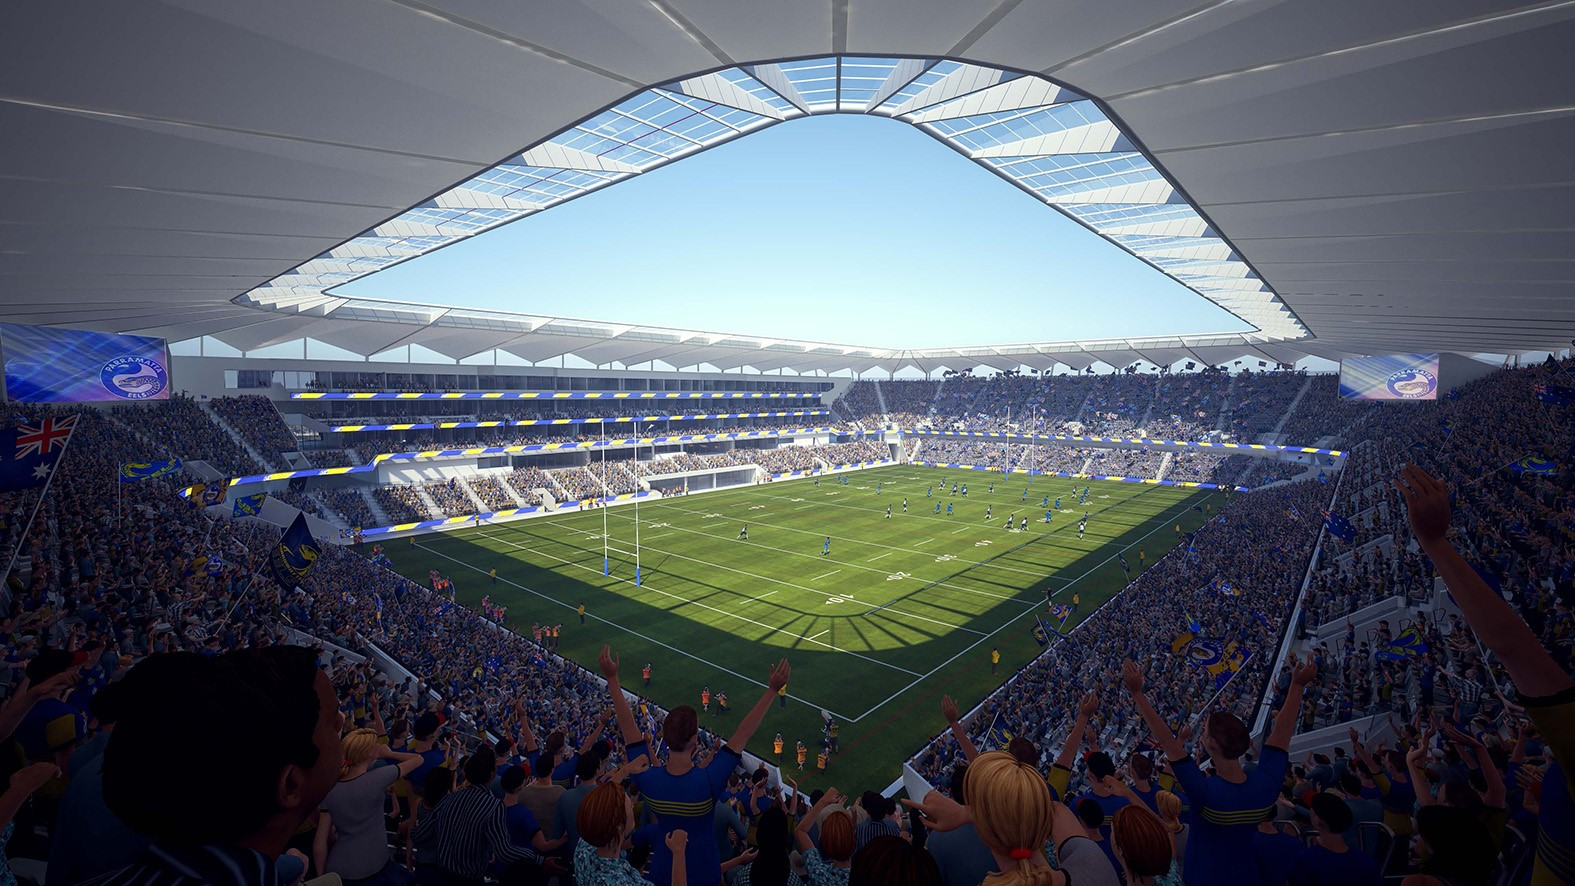 Artist impression of field and stadium